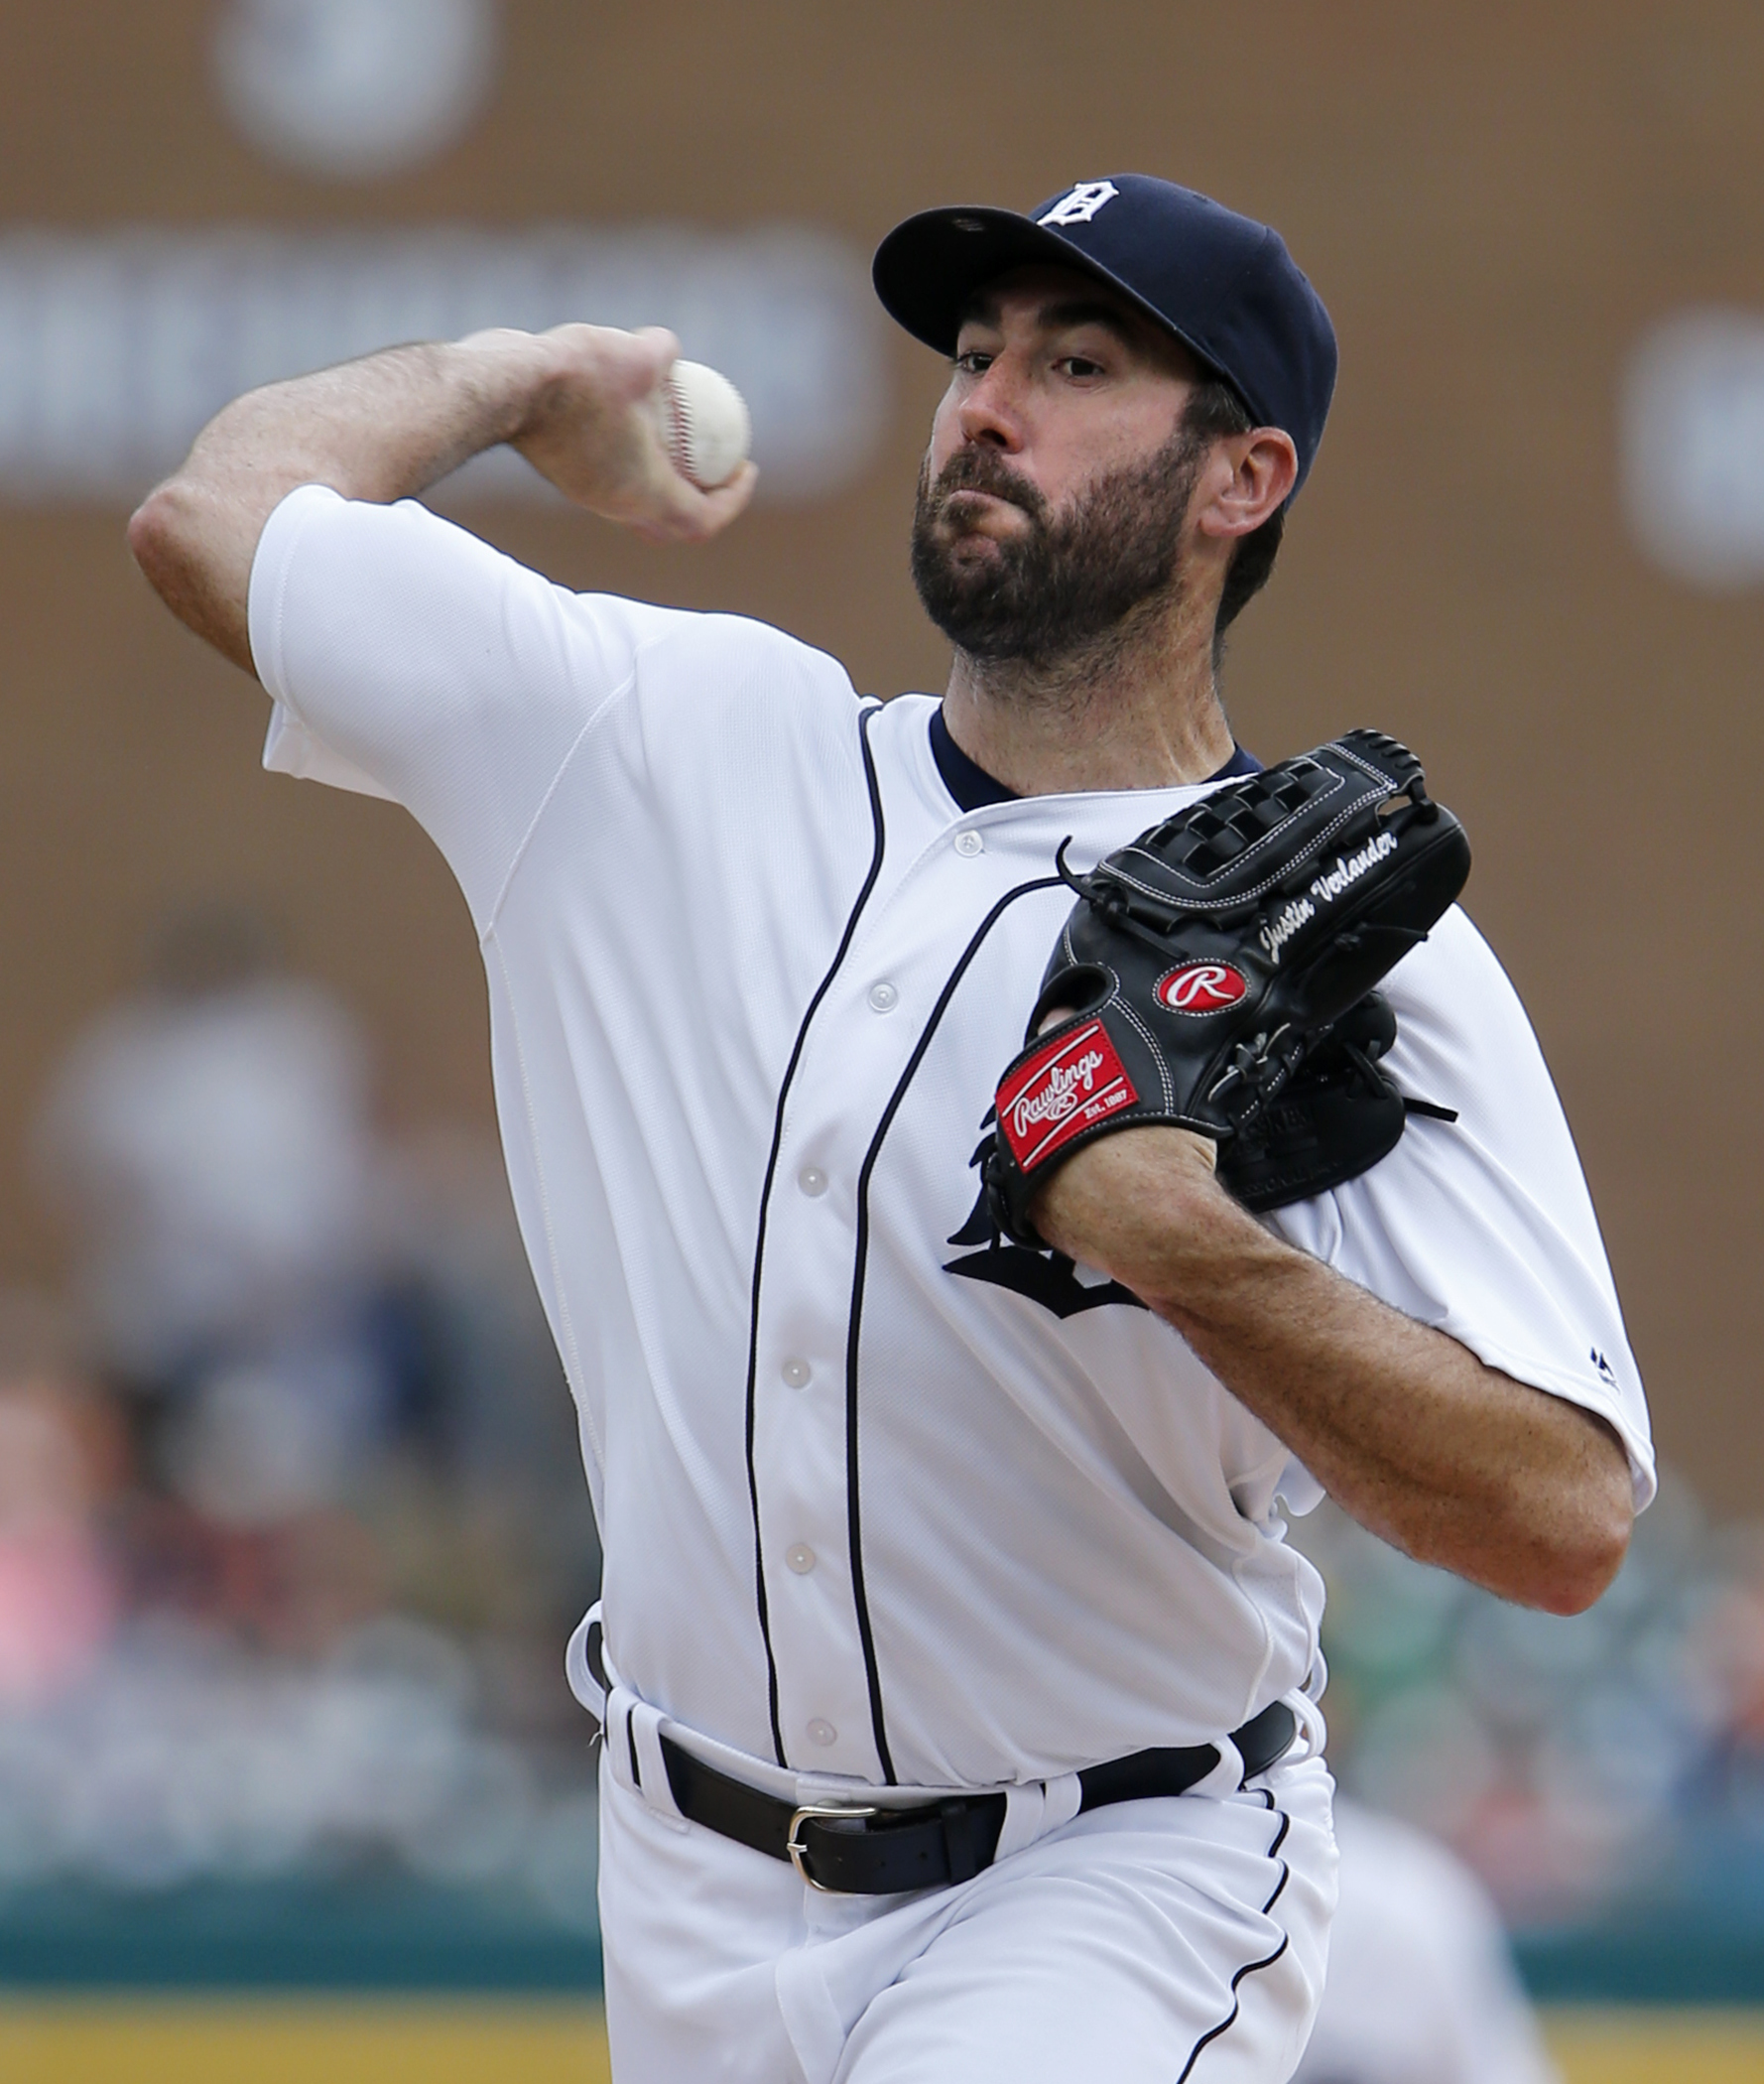 Detroit Tigers' Justin Verlander pitches against the Chicago White Sox during the first inning of a baseball game Sunday, June 5, 2016, in Detroit. (AP Photo/Duane Burleson)